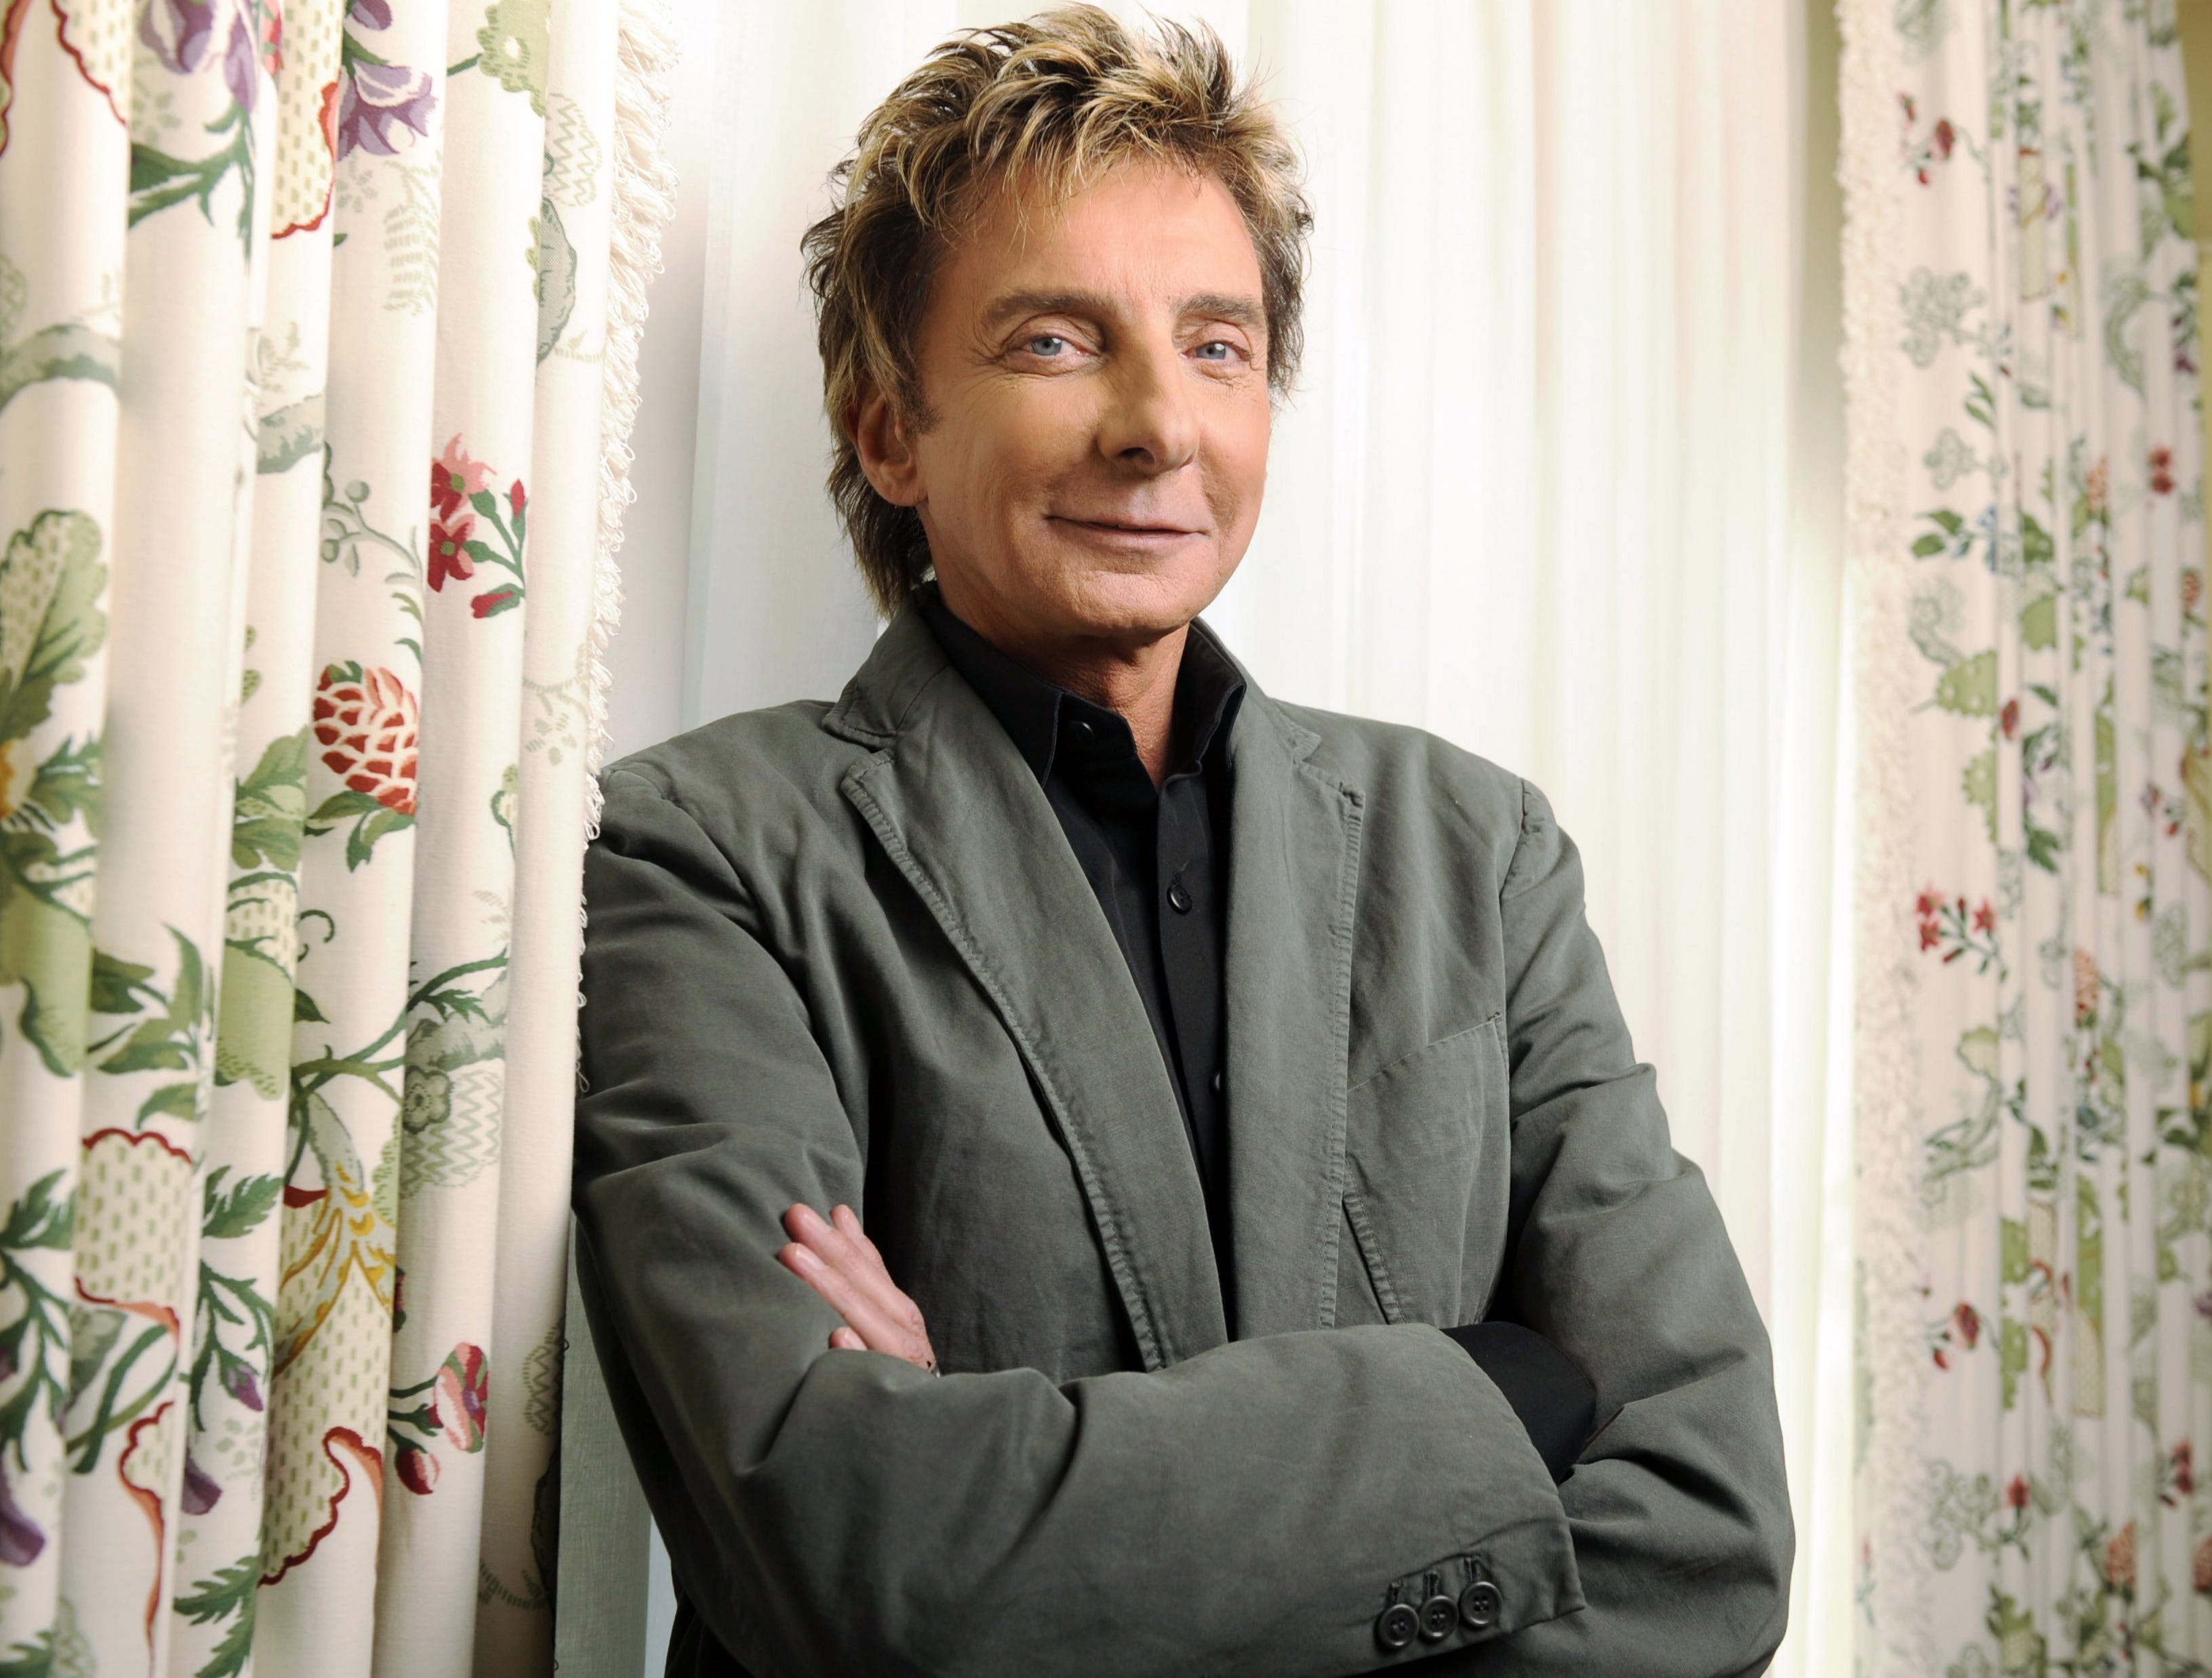 Barry Manilow poses for a portrait at the Peninsula Hotel in Beverly Hills, Calif., on Nov. 10, 2008.